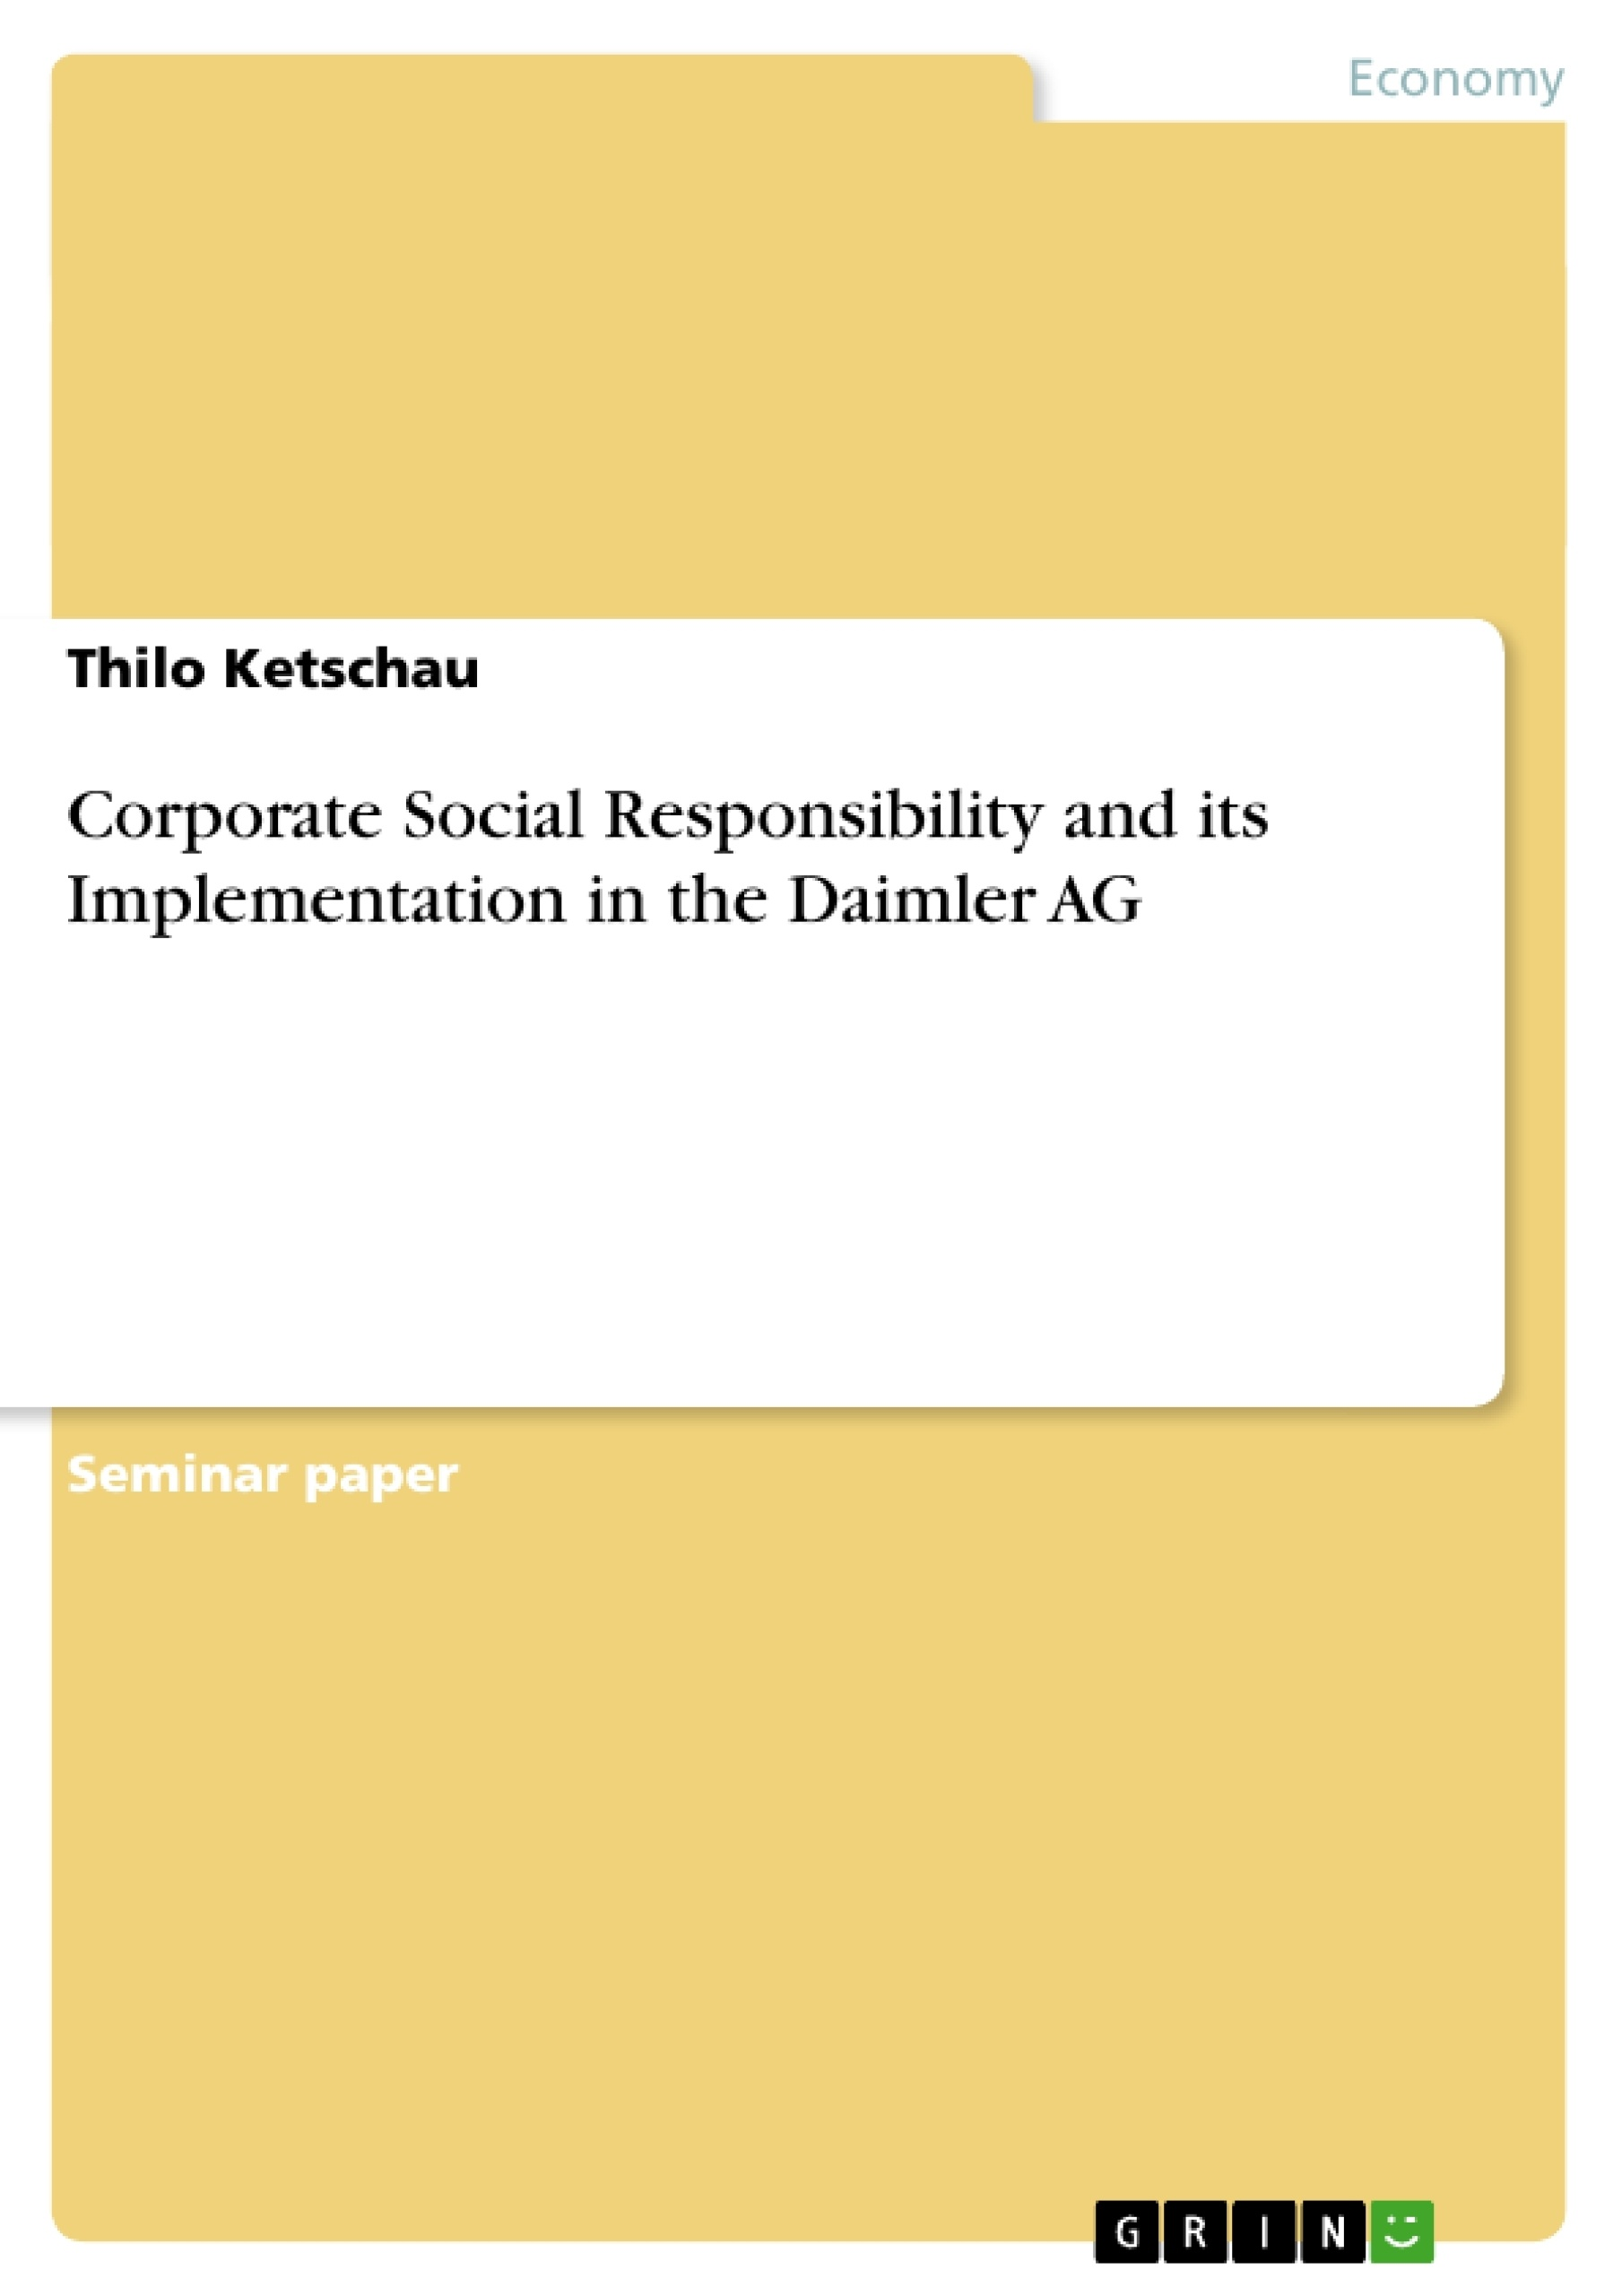 Title: Corporate Social Responsibility and its Implementation in the Daimler AG